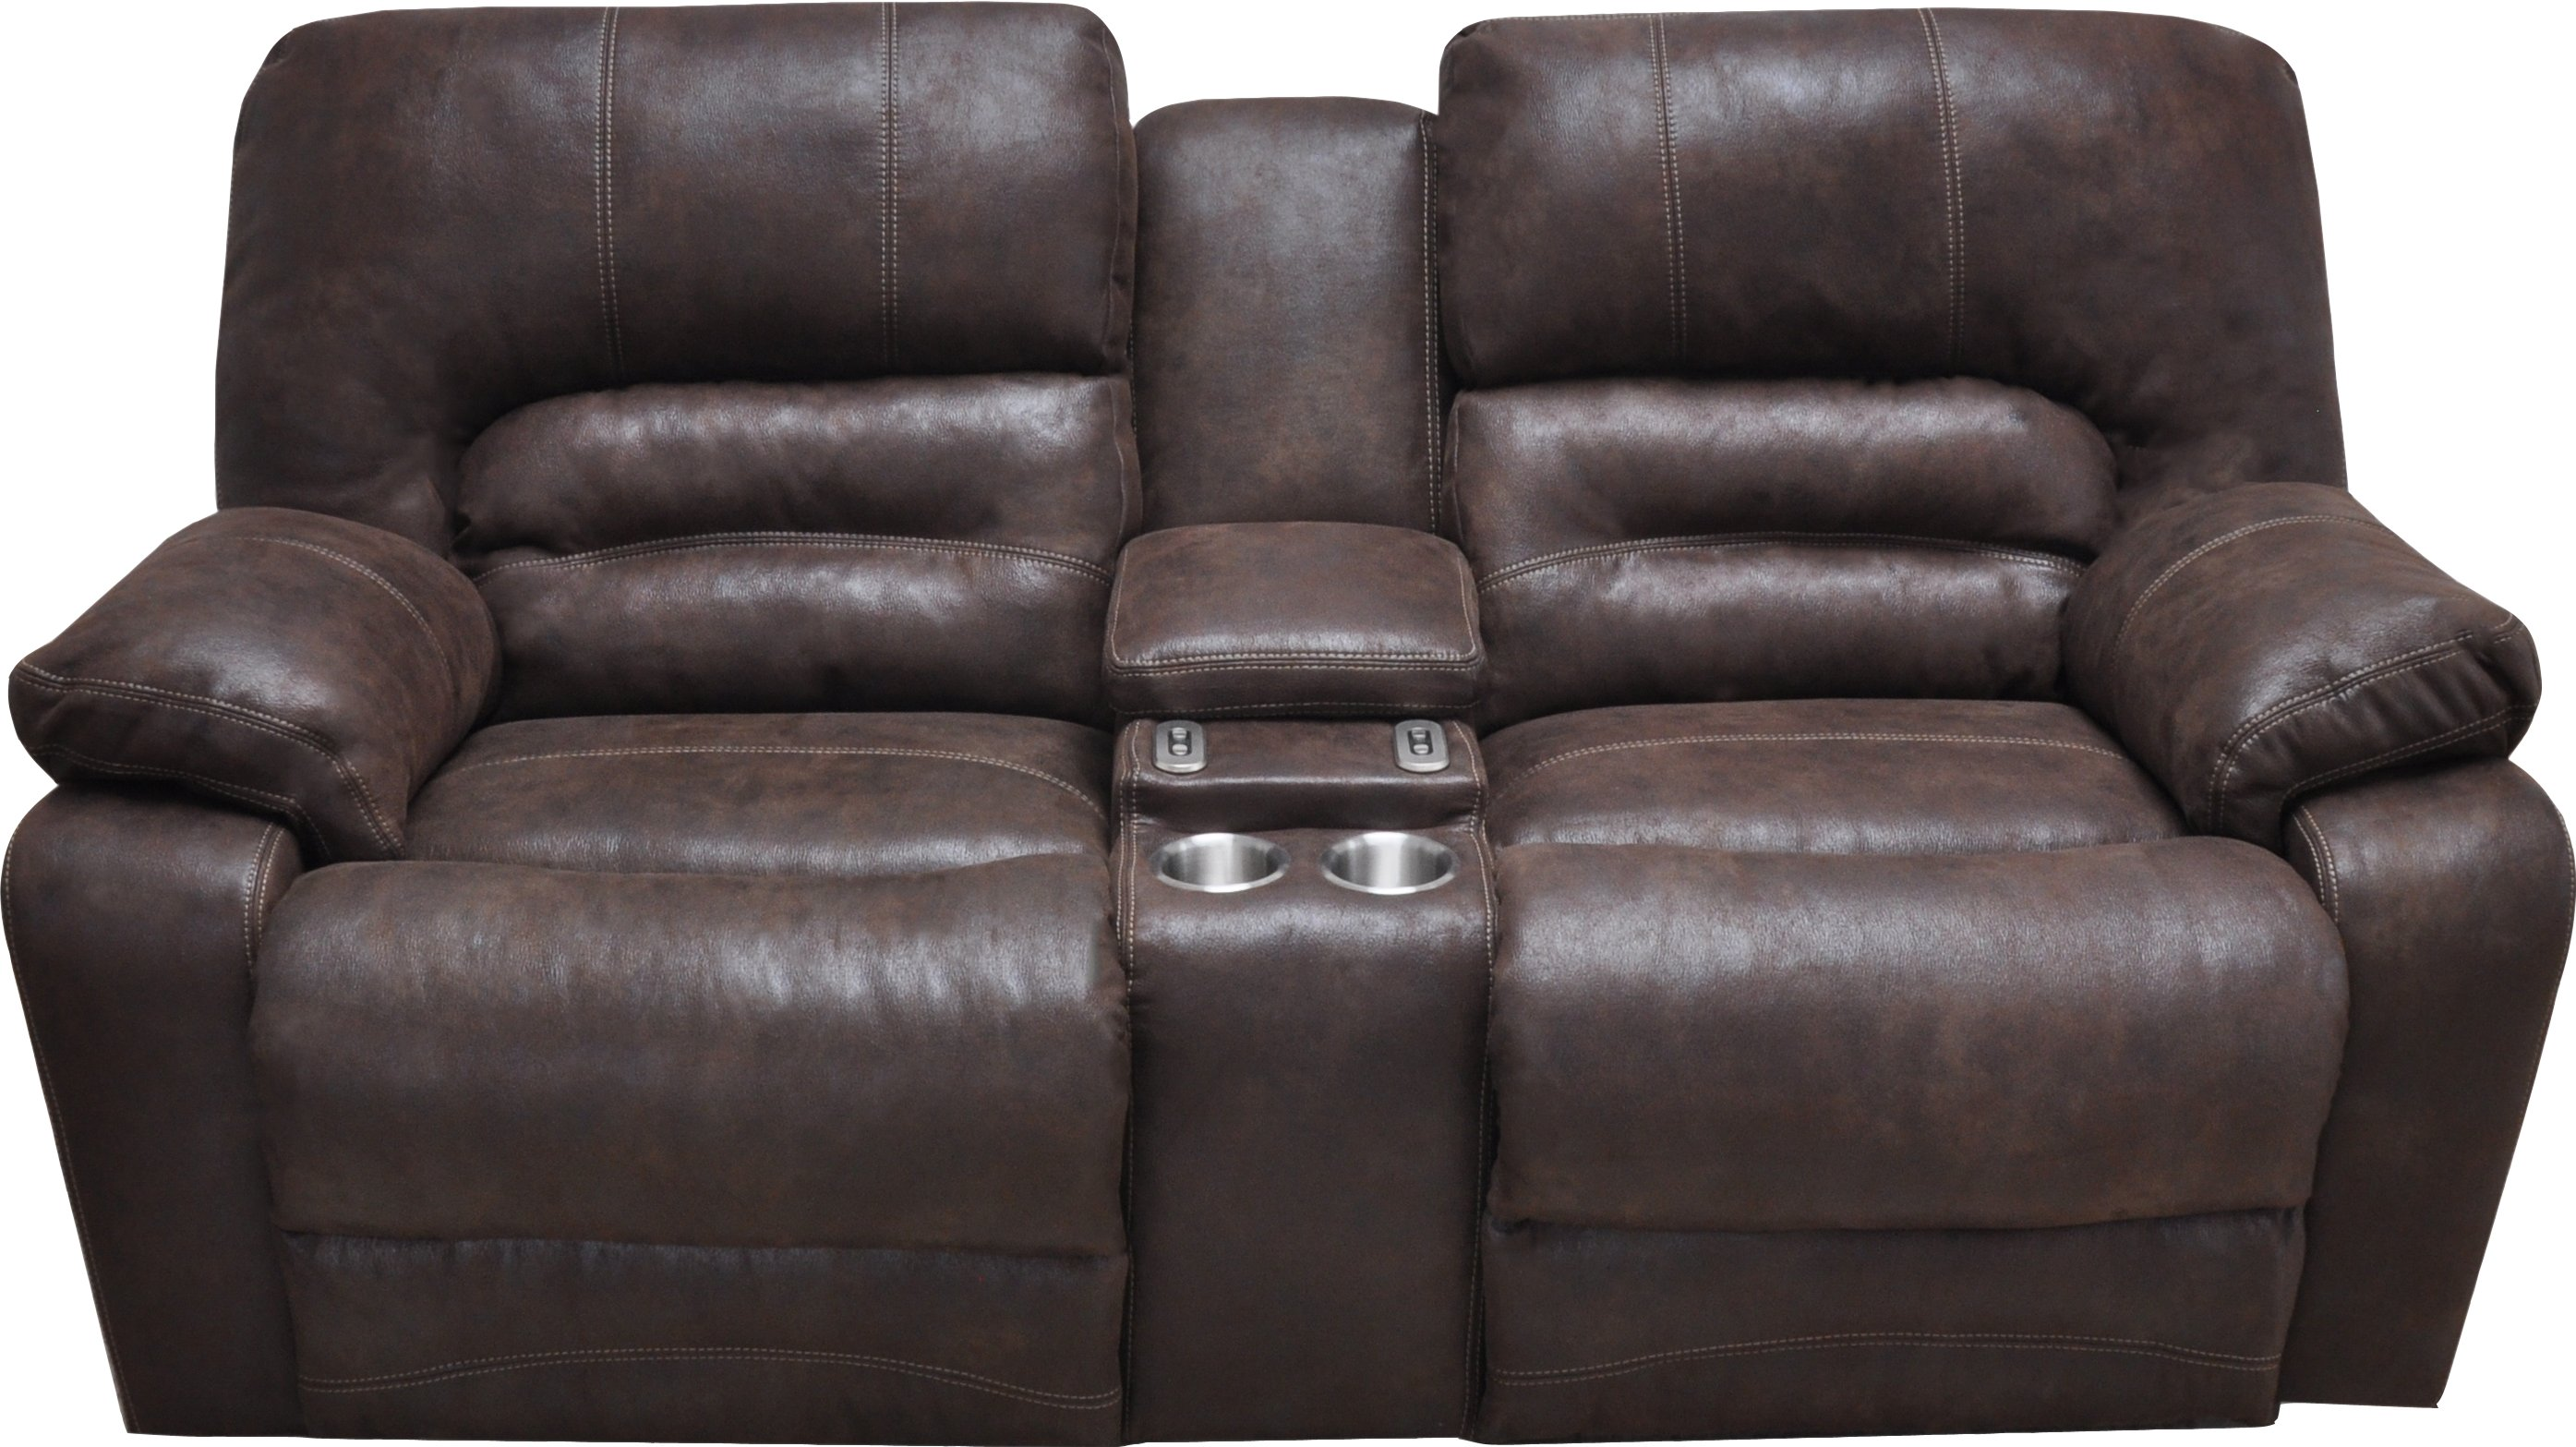 Chocolate Brown Microfiber Reclining Sofa